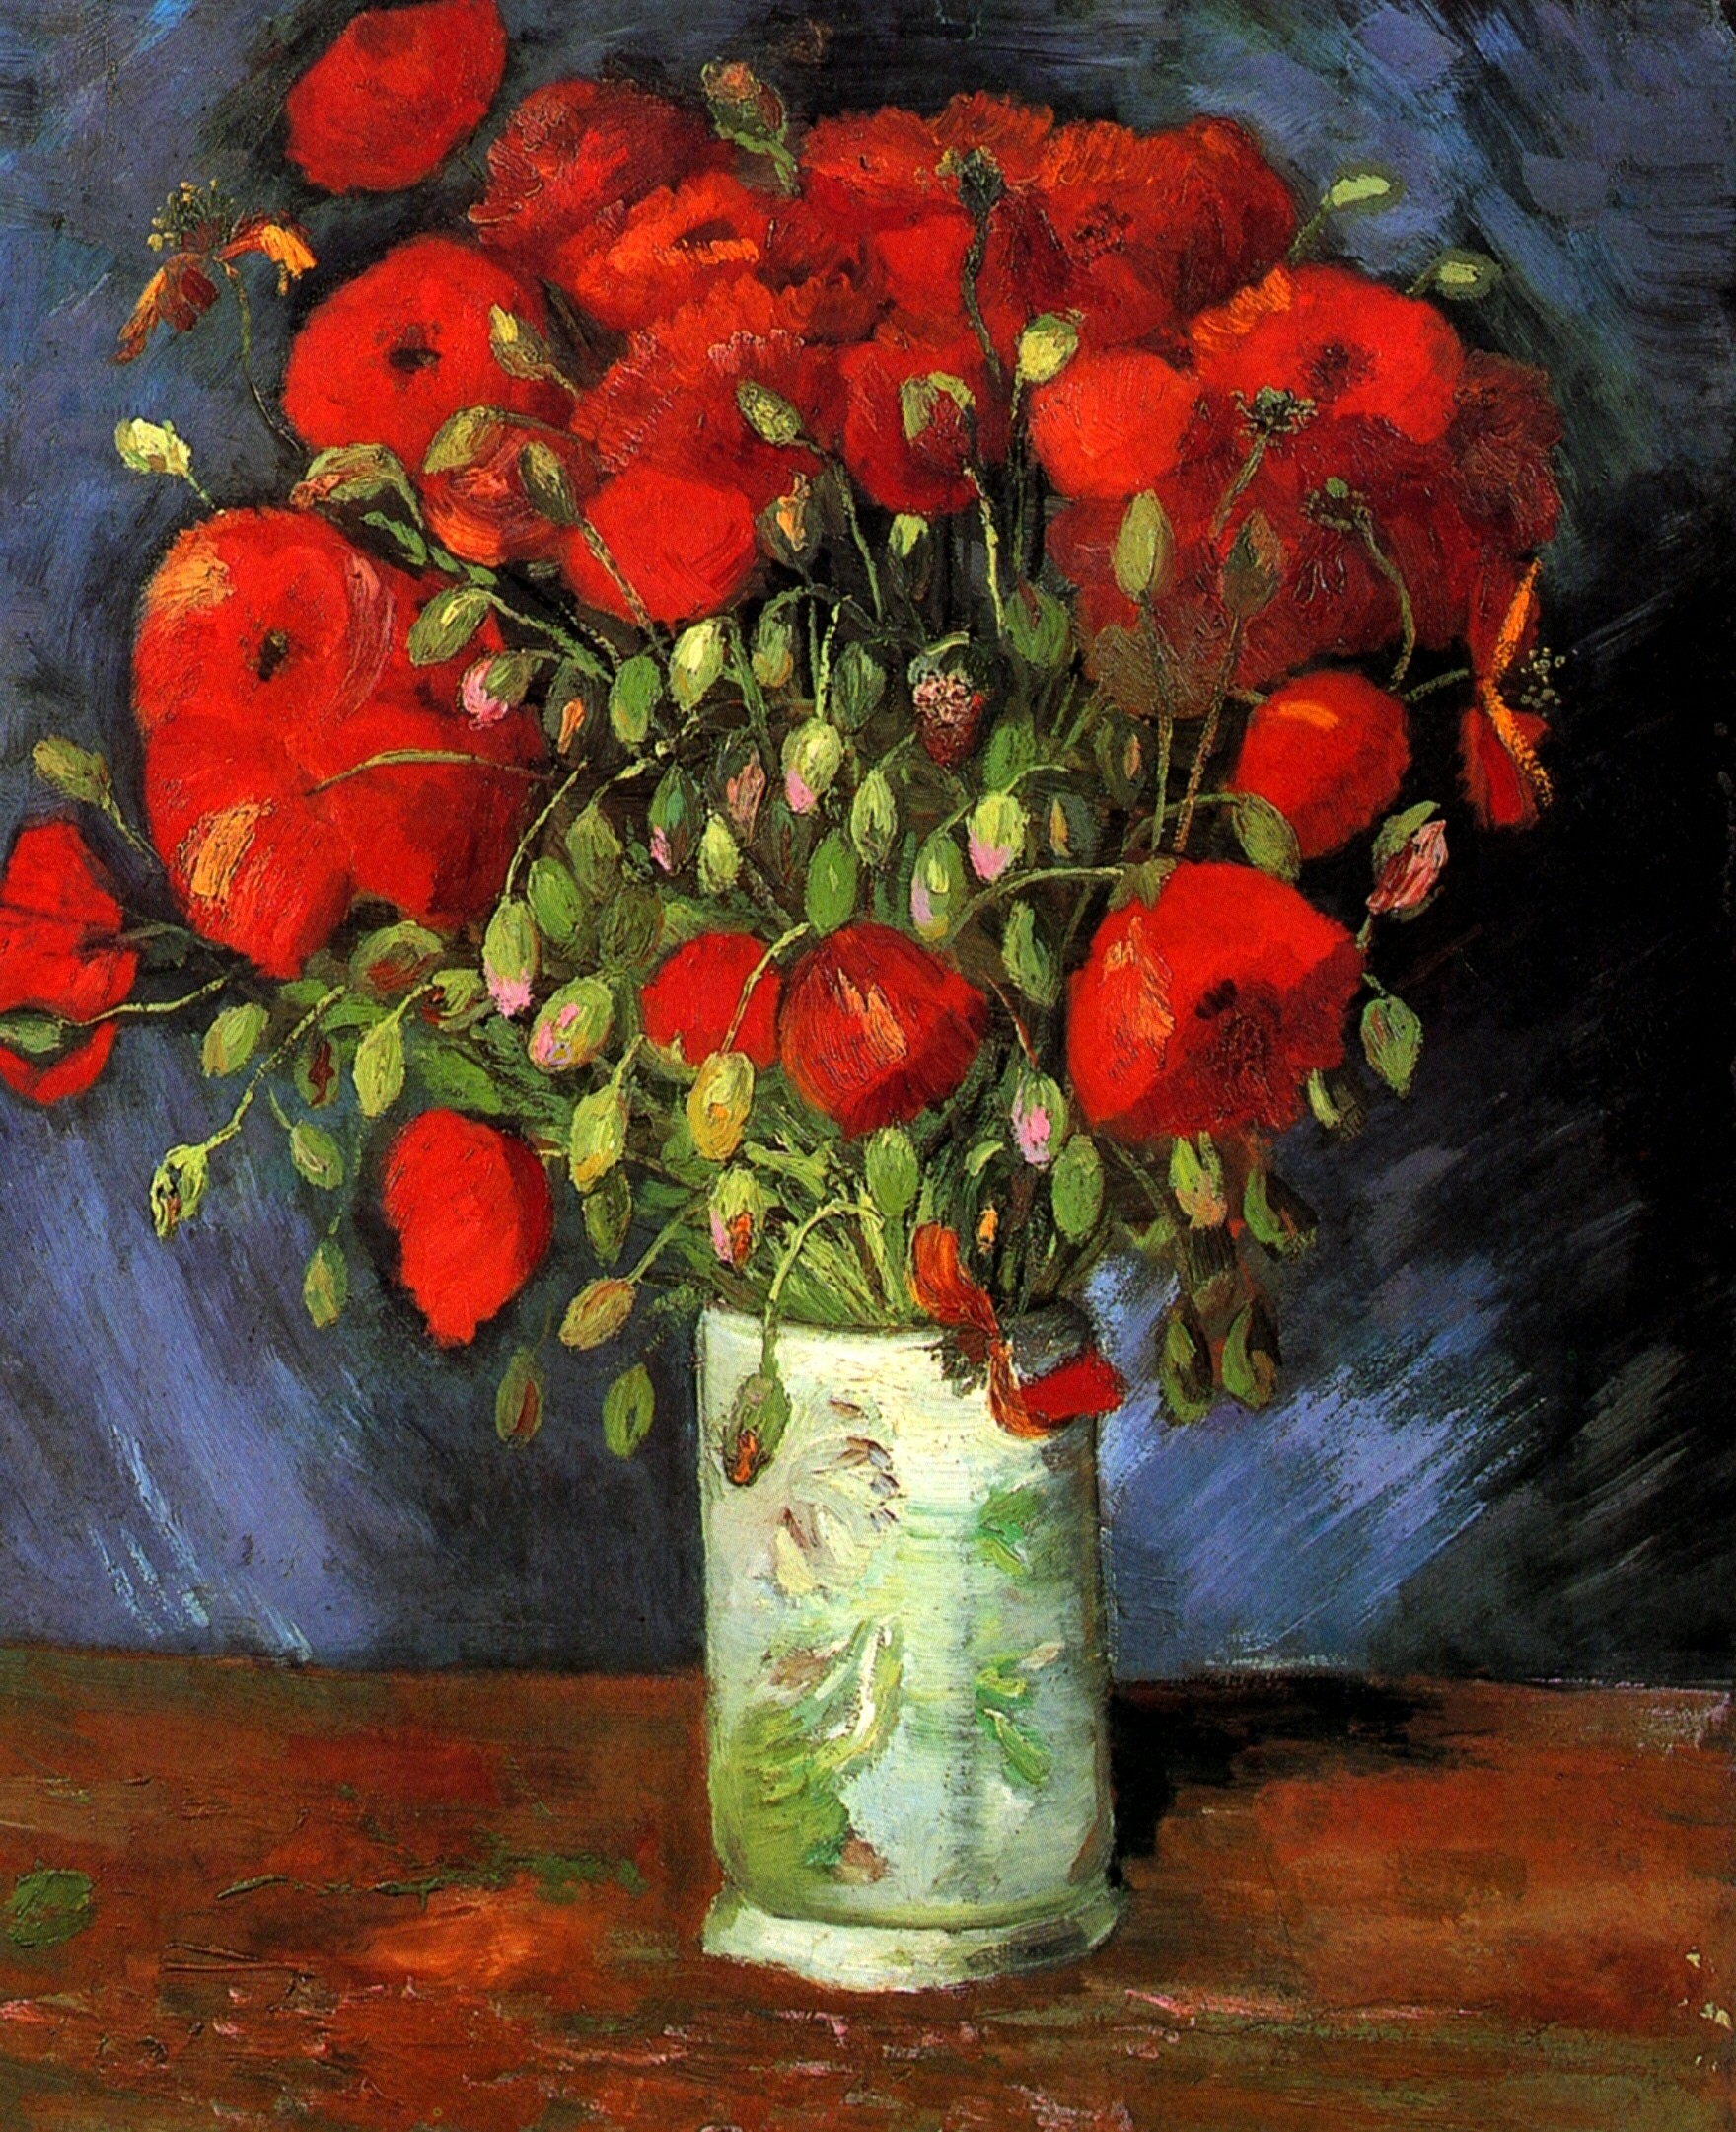 Vase with Red Poppies - Wikipedia